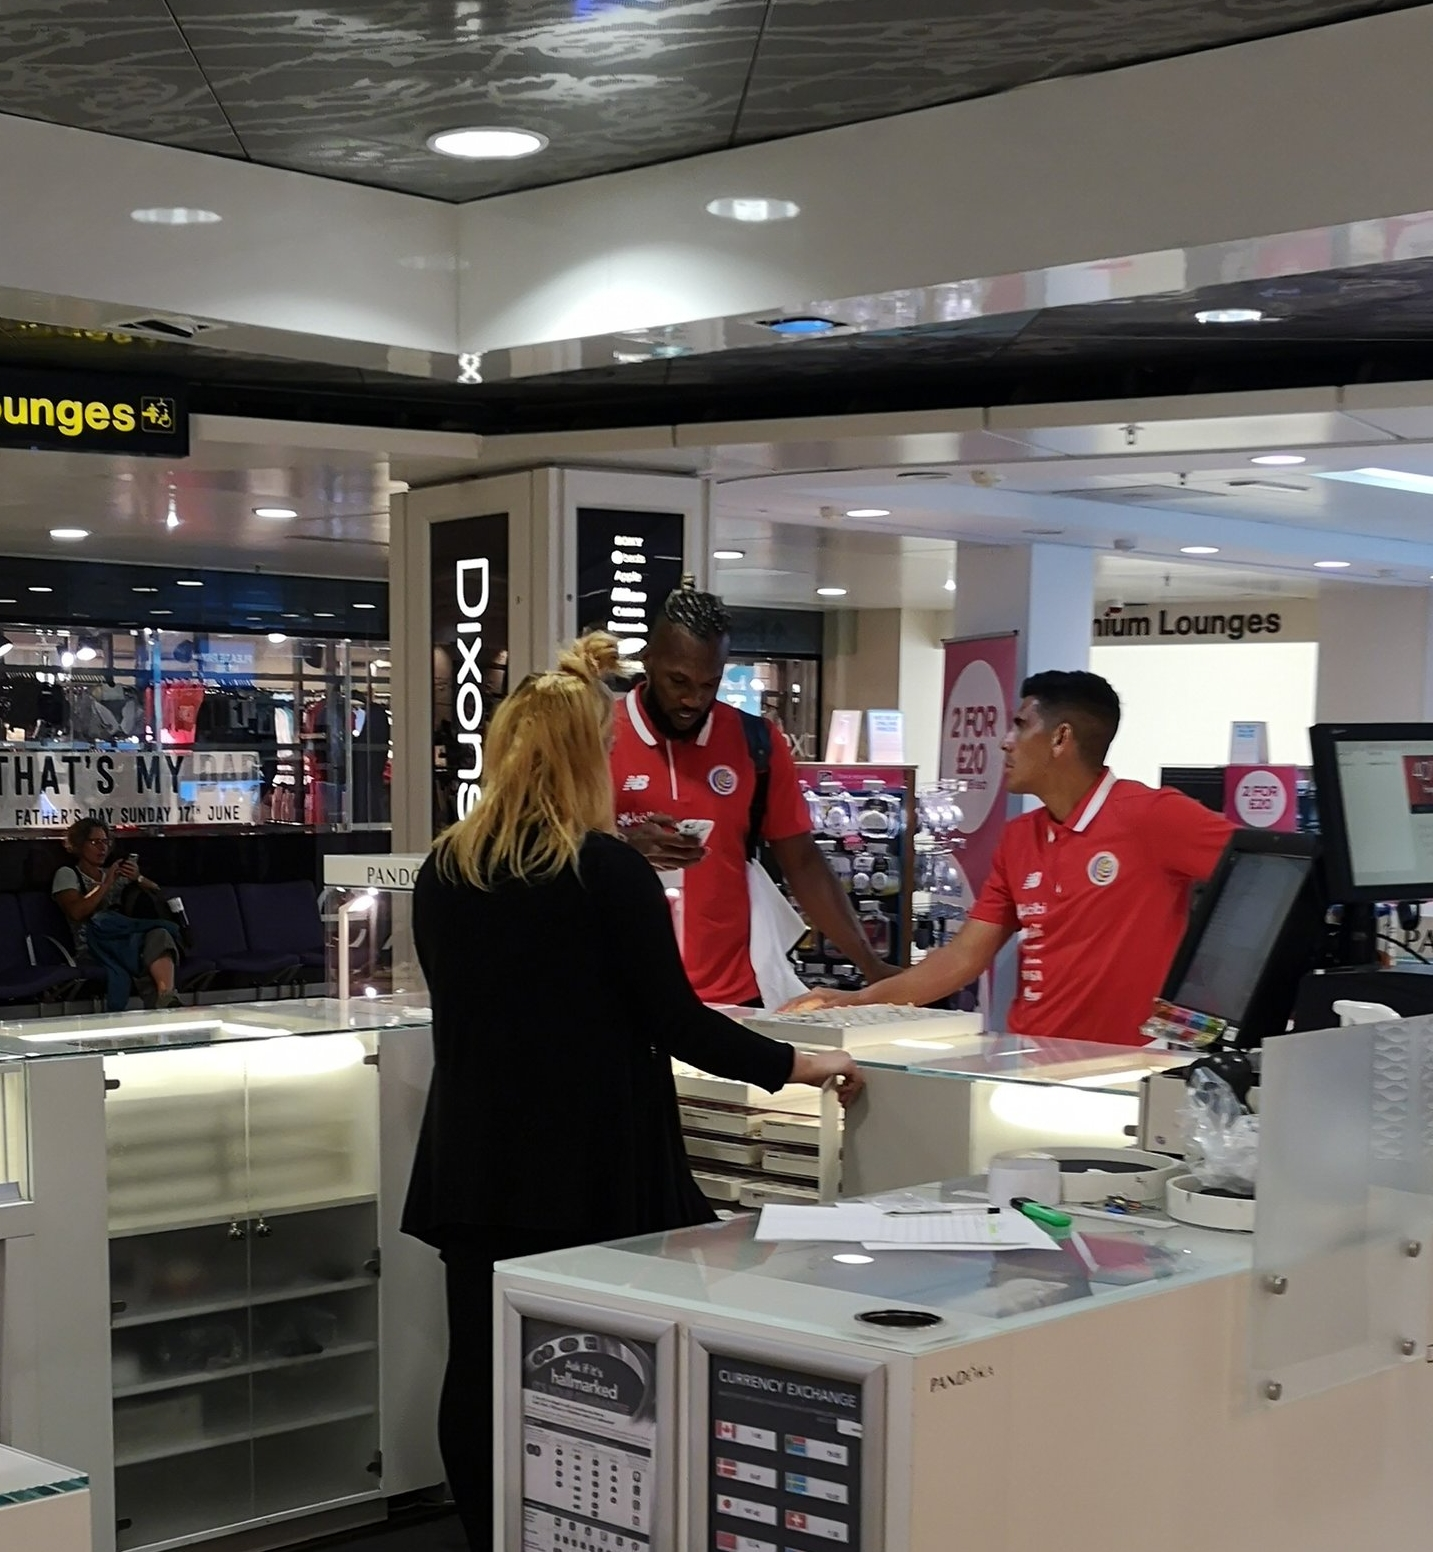 The costa rican national side were in Manchester airport